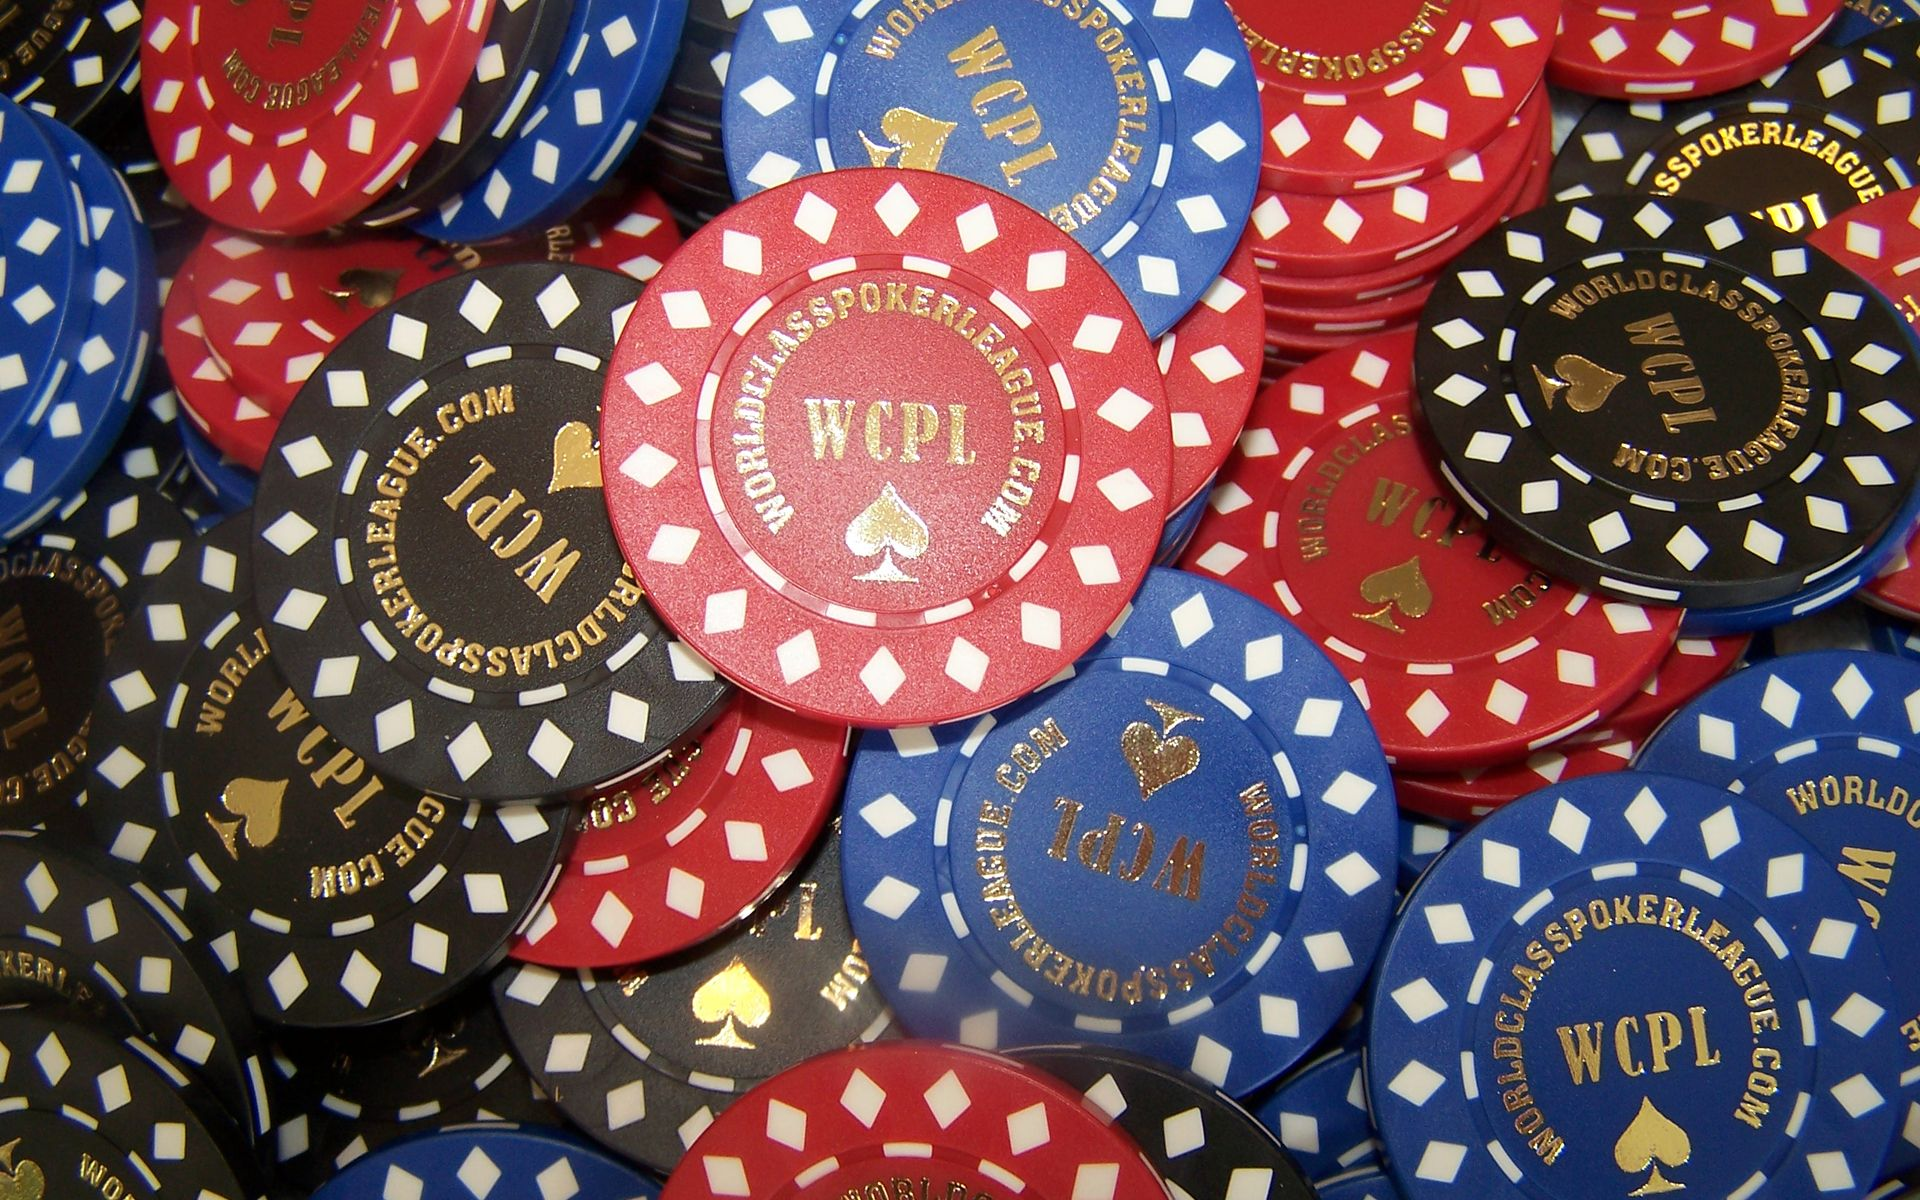 Miscellaneous Diamond Poker Chips picture nr 58922 1920x1200